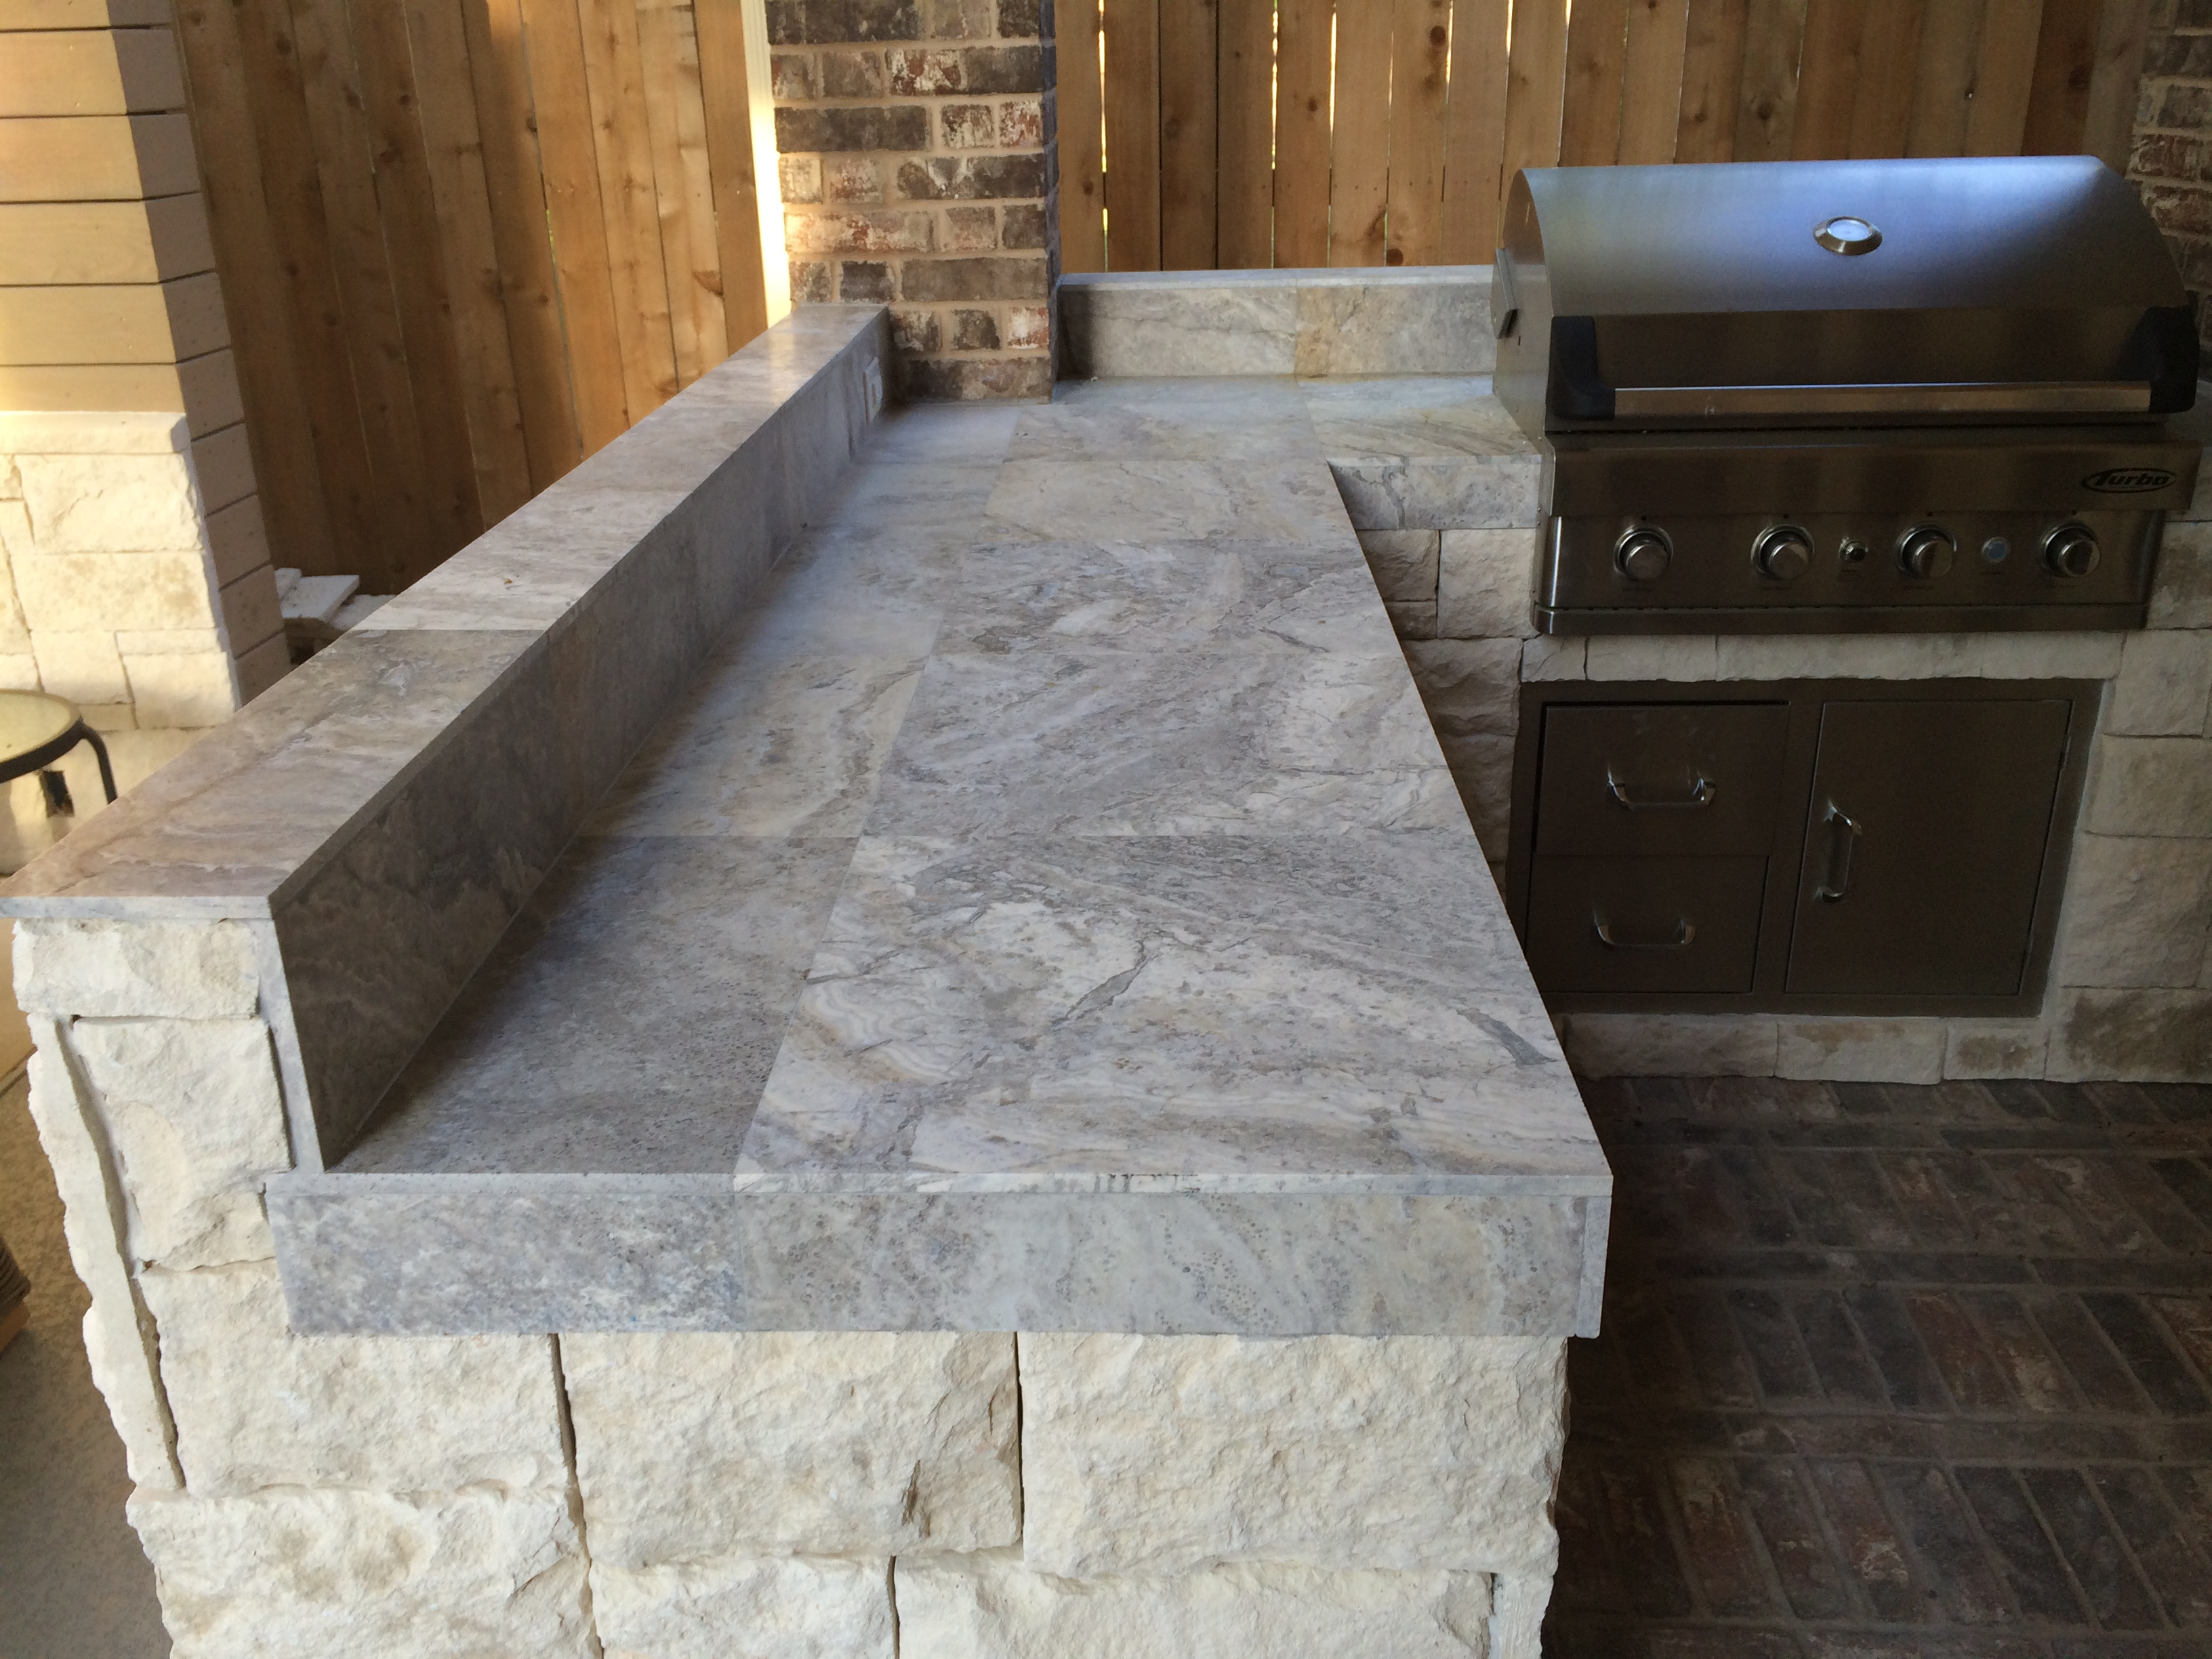 Kitchen Tile Countertop Houston Outdoor Kitchen With Silver Travertine Tile Countertop